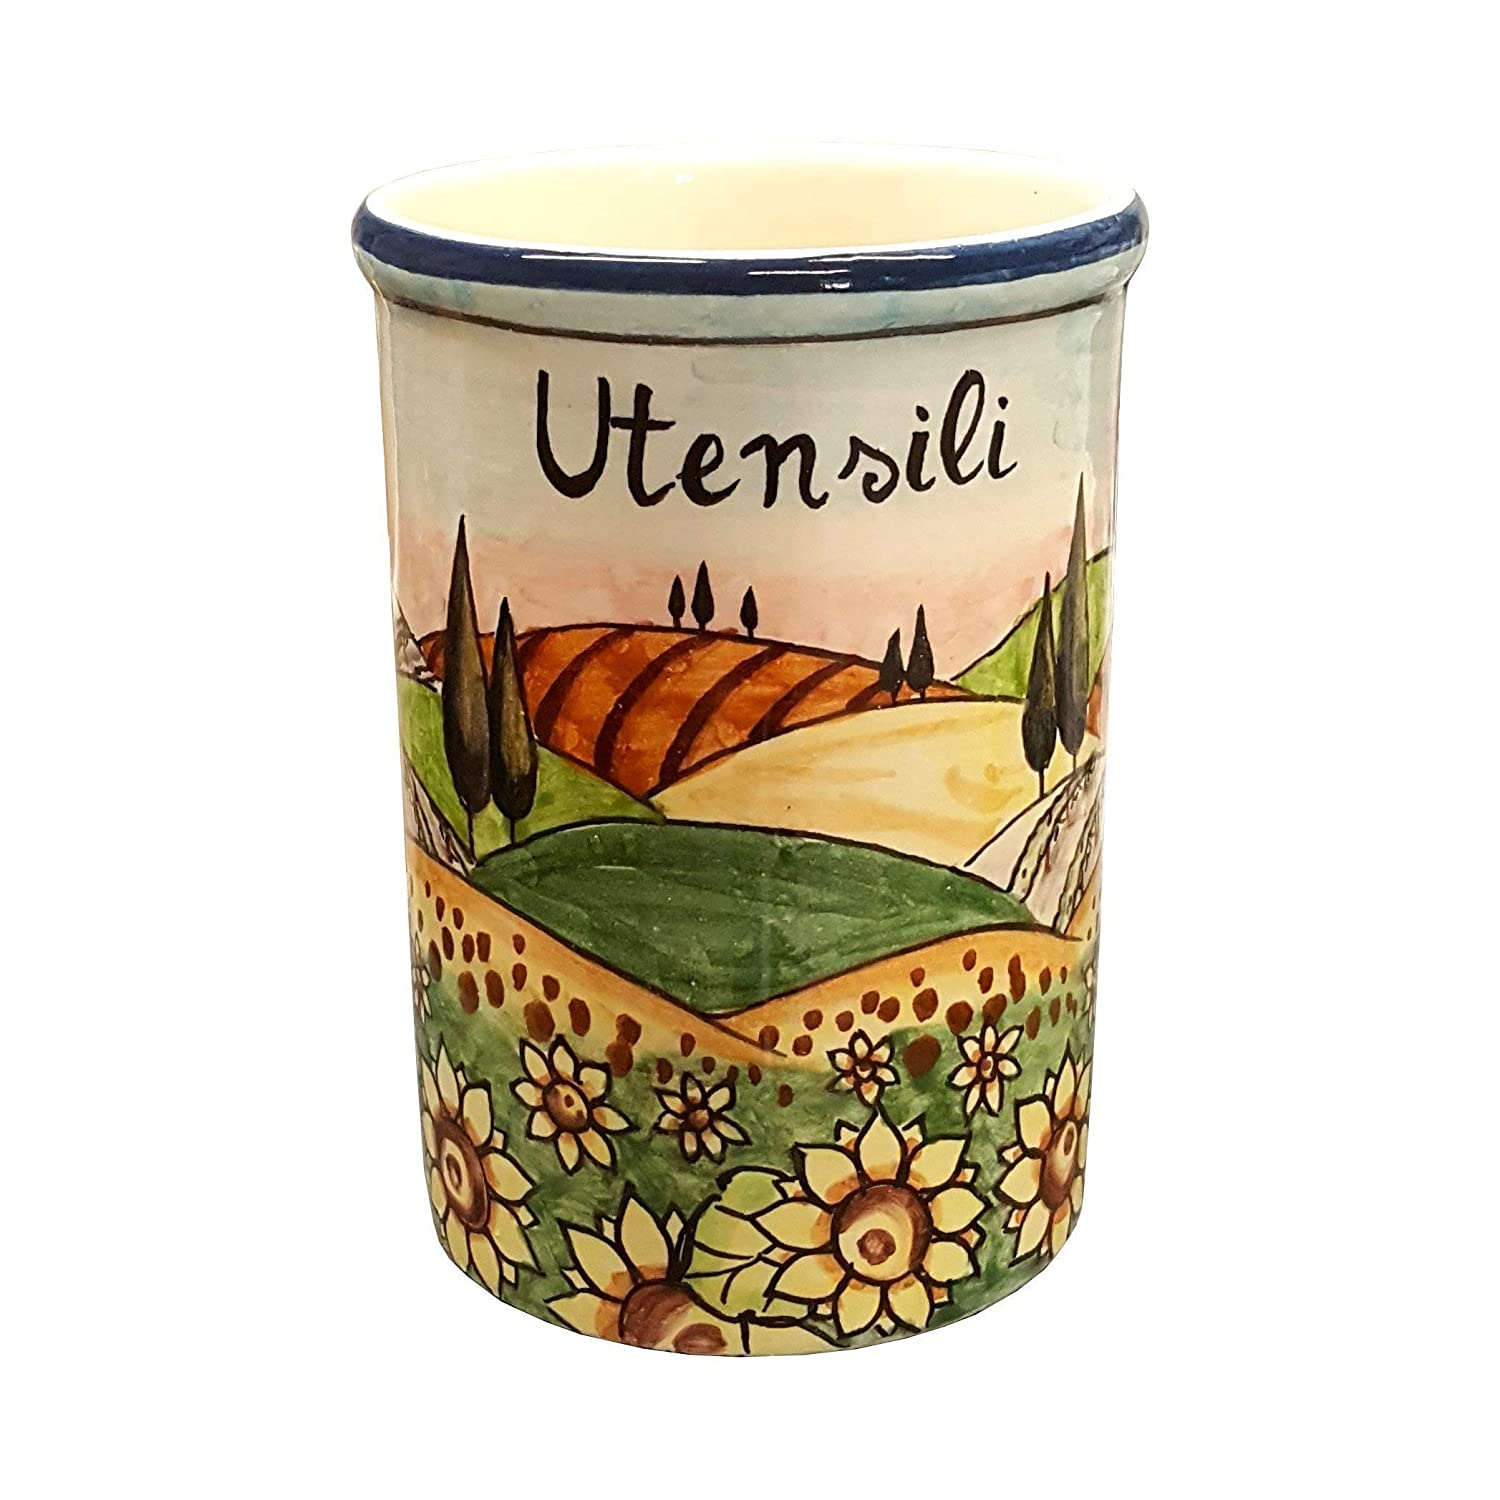 CERAMICHE D'ARTE PARRINI- Italian Ceramic Utensil Holder Vessel Hand Painted Decorated Tuscan Landscape Sunflower Made in ITALY Art Pottery